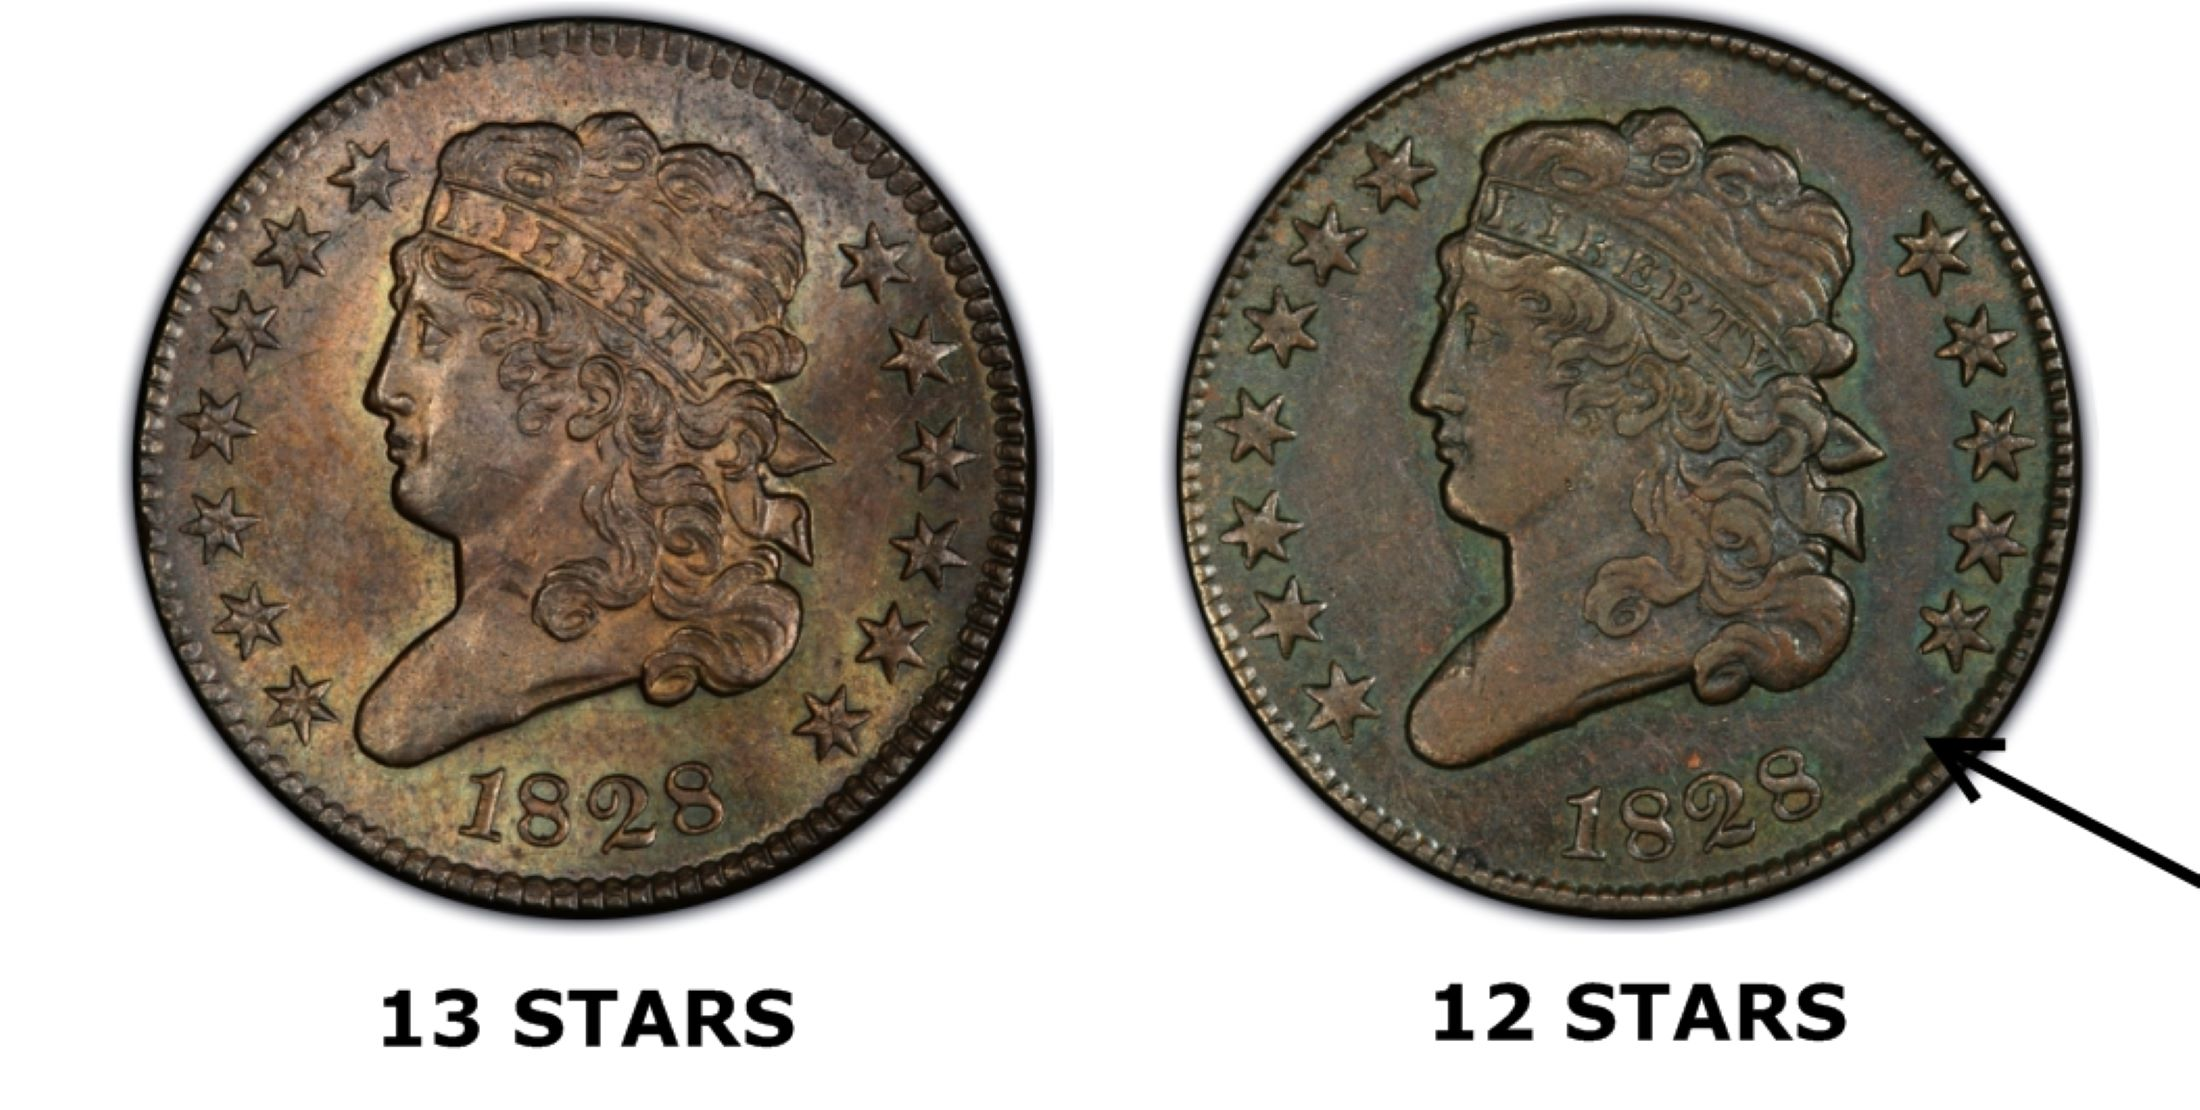 coin with 12 stars